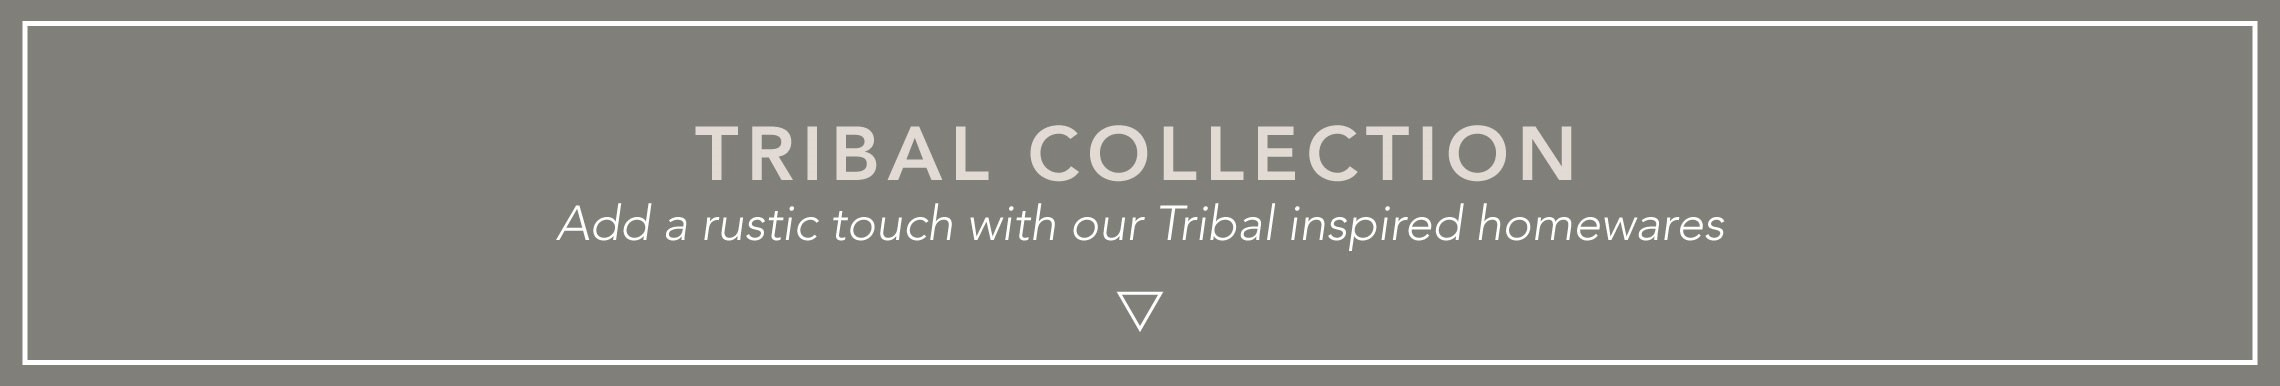 Shop our Tribal collection